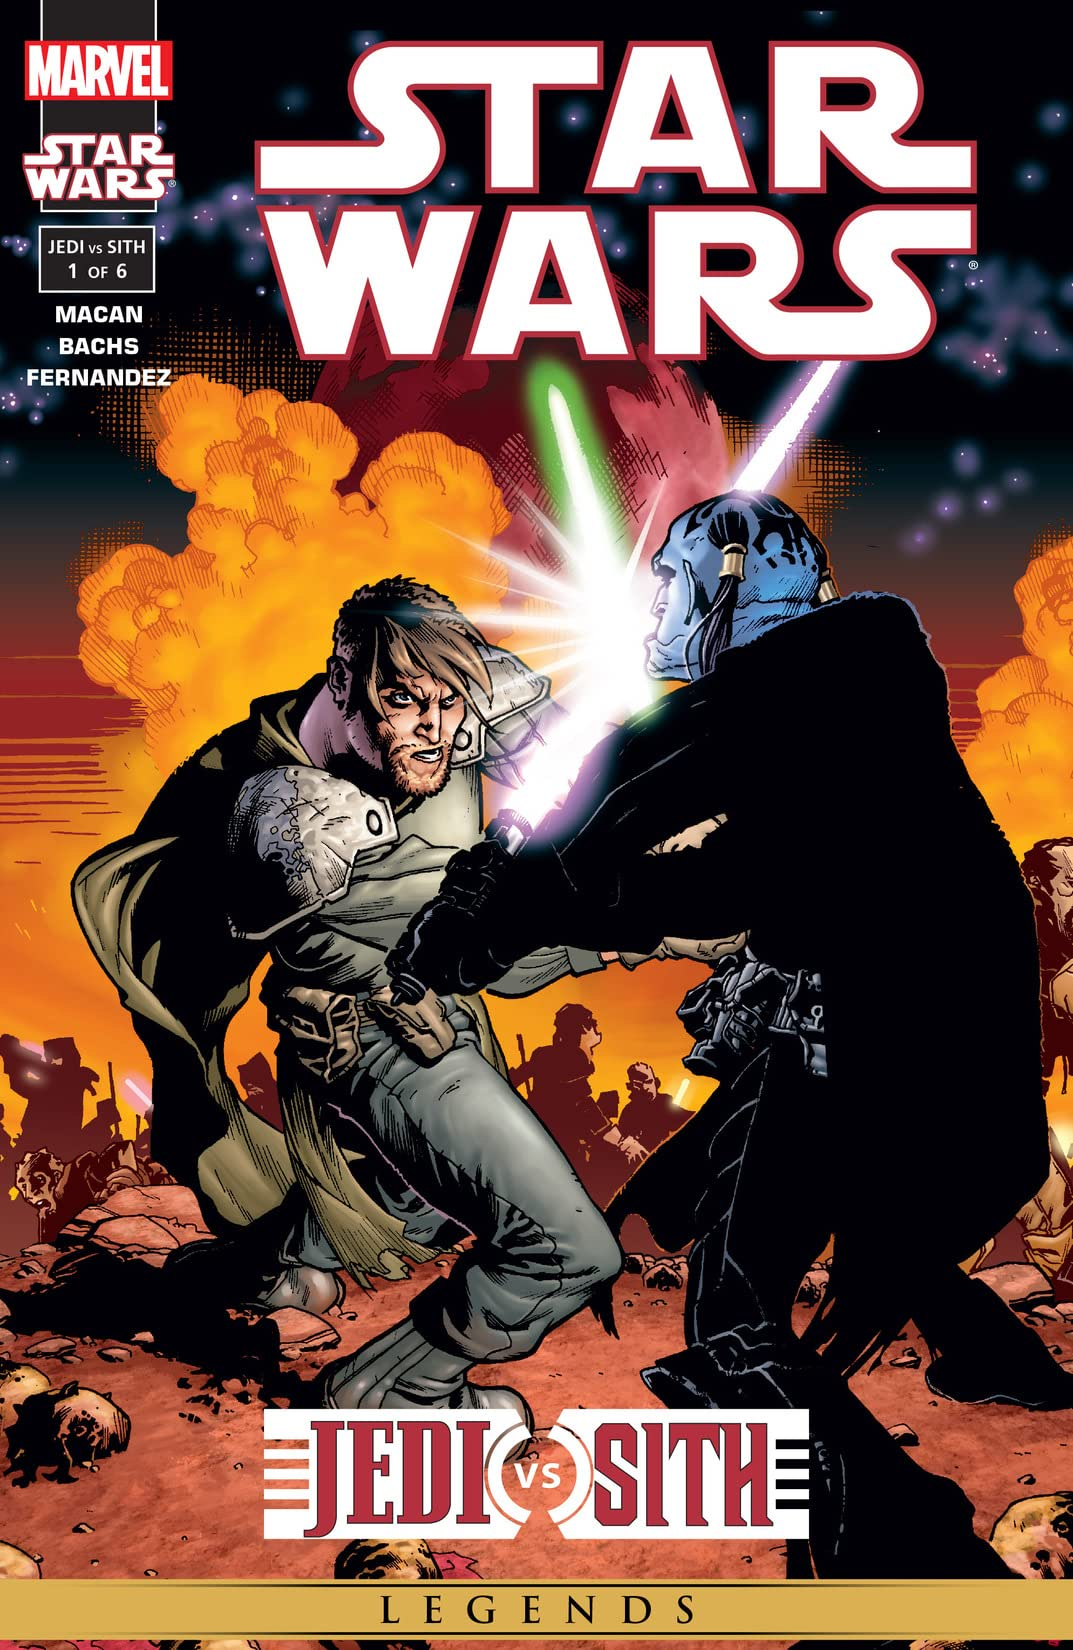 Star Wars: Jedi vs. Sith (2001) #1 (of 6)